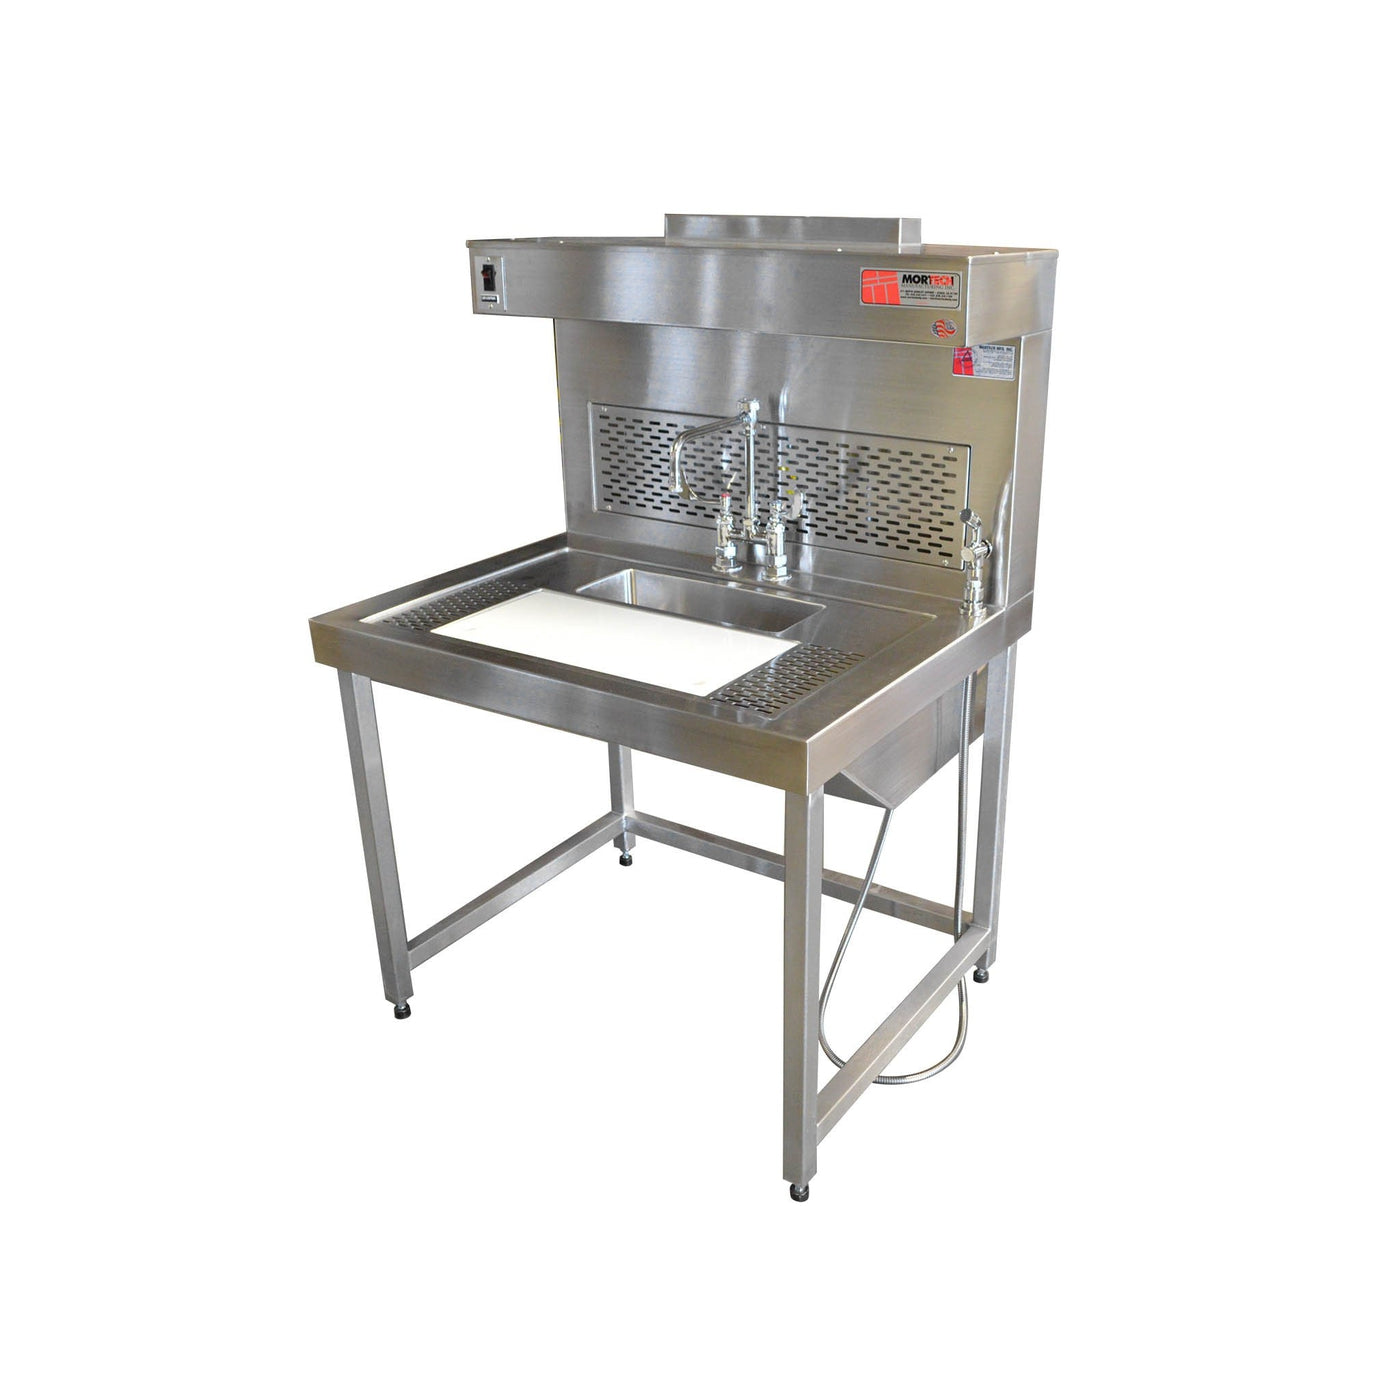 Dual-Draft Pathology Workstation-Pathology Grossing Stations-Mortech Manufacturing Company Inc. Quality Stainless Steel Autopsy, Morgue, Funeral Home, Necropsy, Veterinary / Anatomy, Dissection Equipment and Accessories